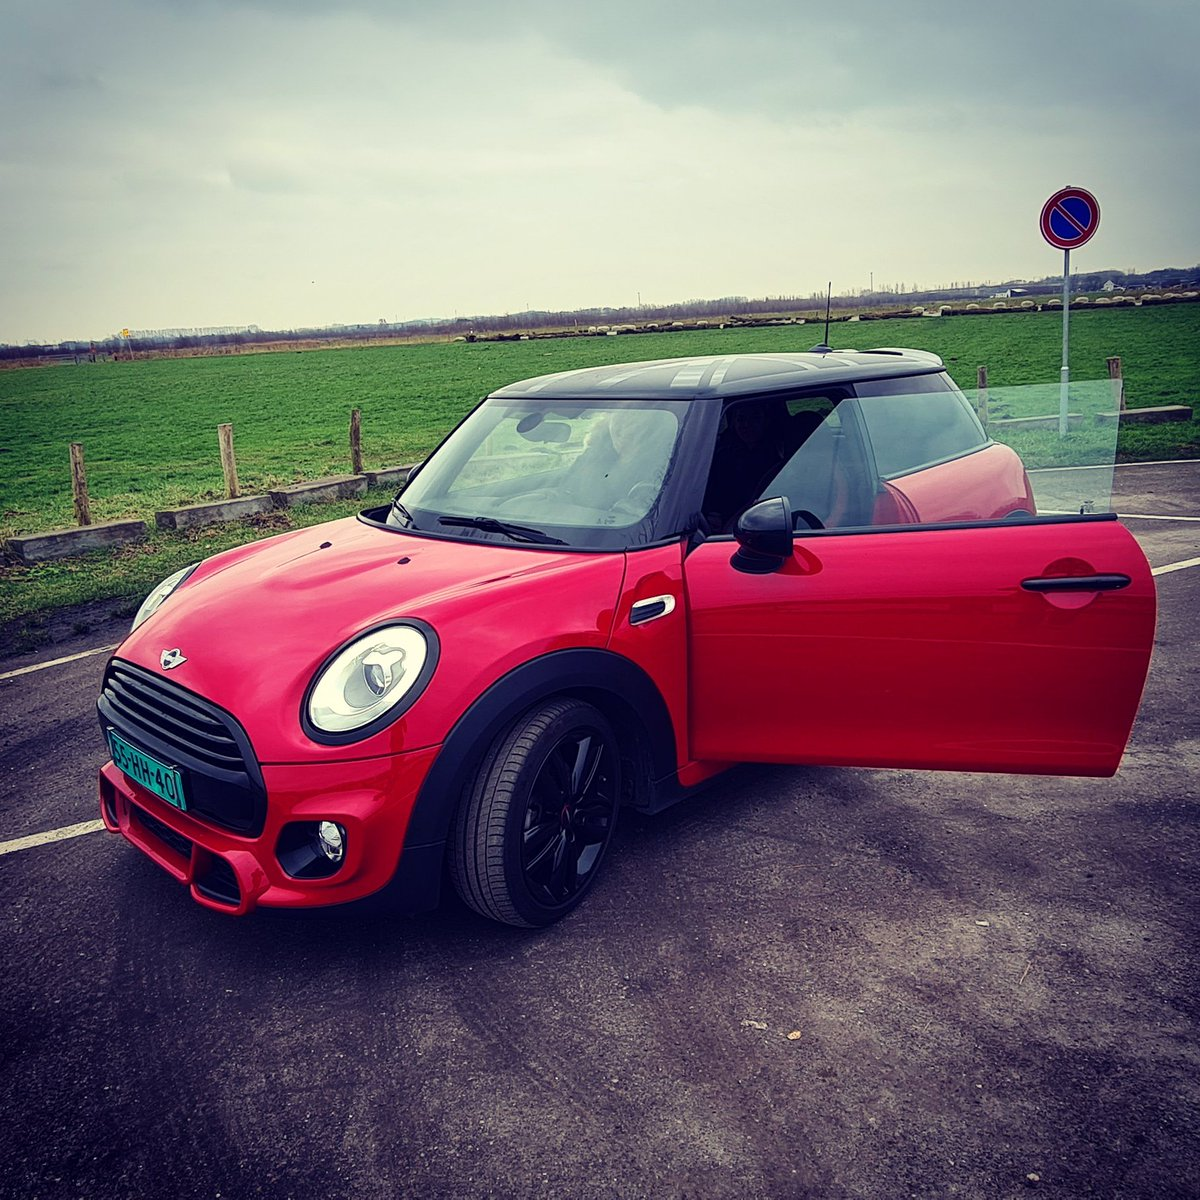 So happy with my new car!  Is it the 25th already!?  #newcar #minicooper #notnormal #thursdaymorning